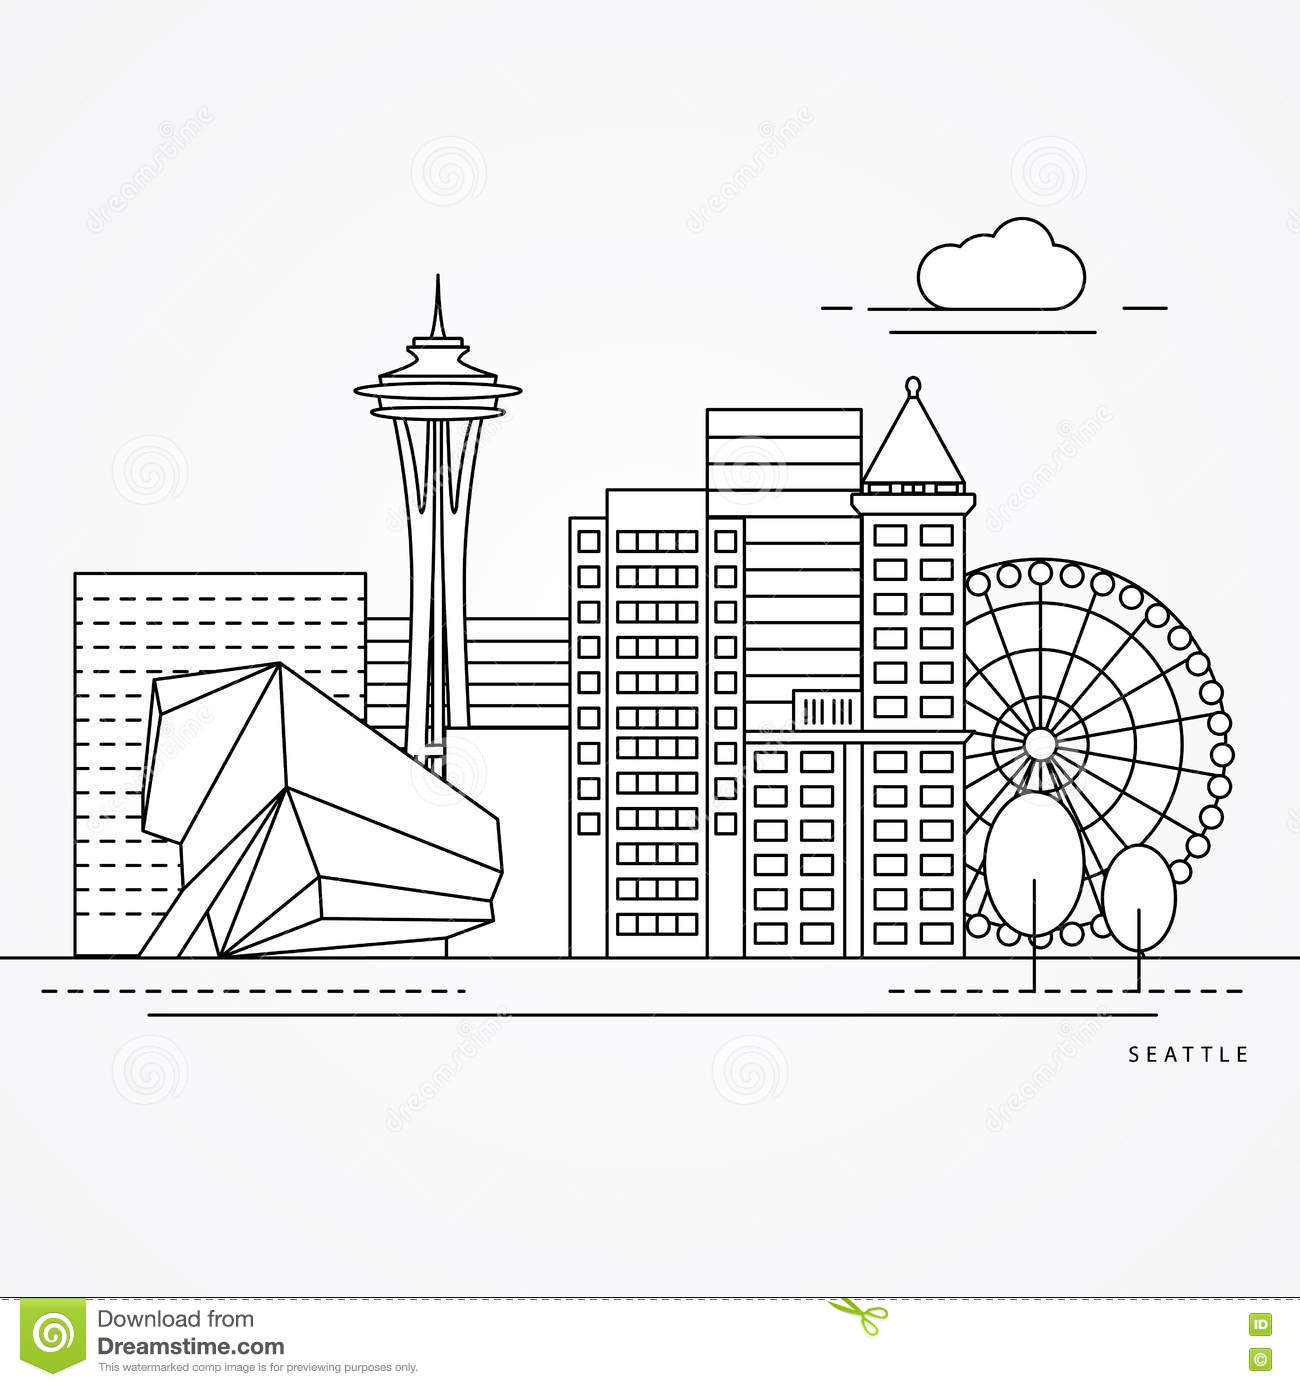 One Line Design : Seattle one line design stock vector illustration of